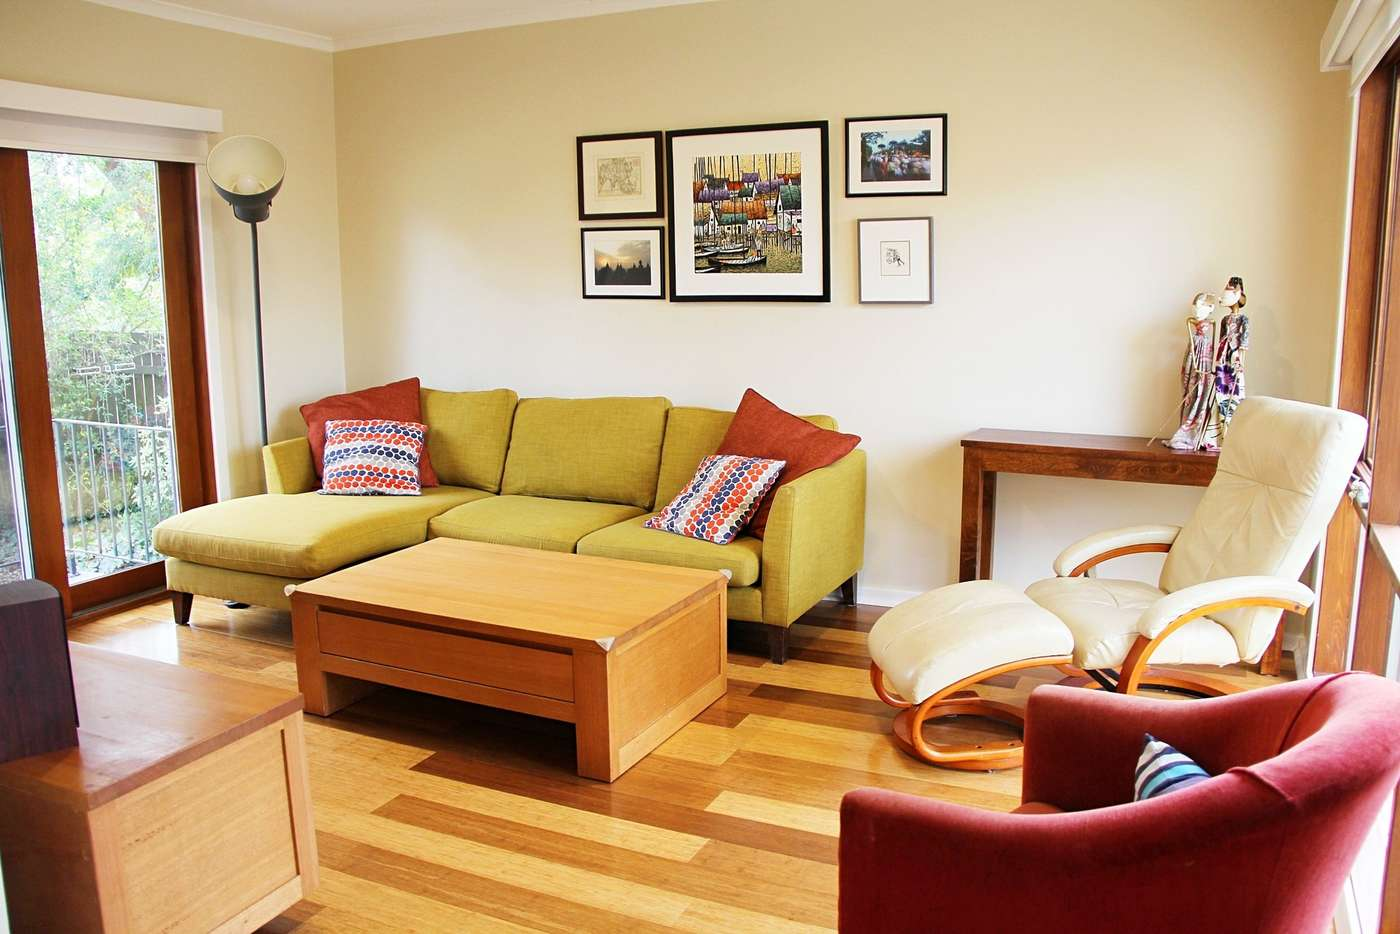 Seventh view of Homely house listing, 6 Prendergast Street, Curtin ACT 2605